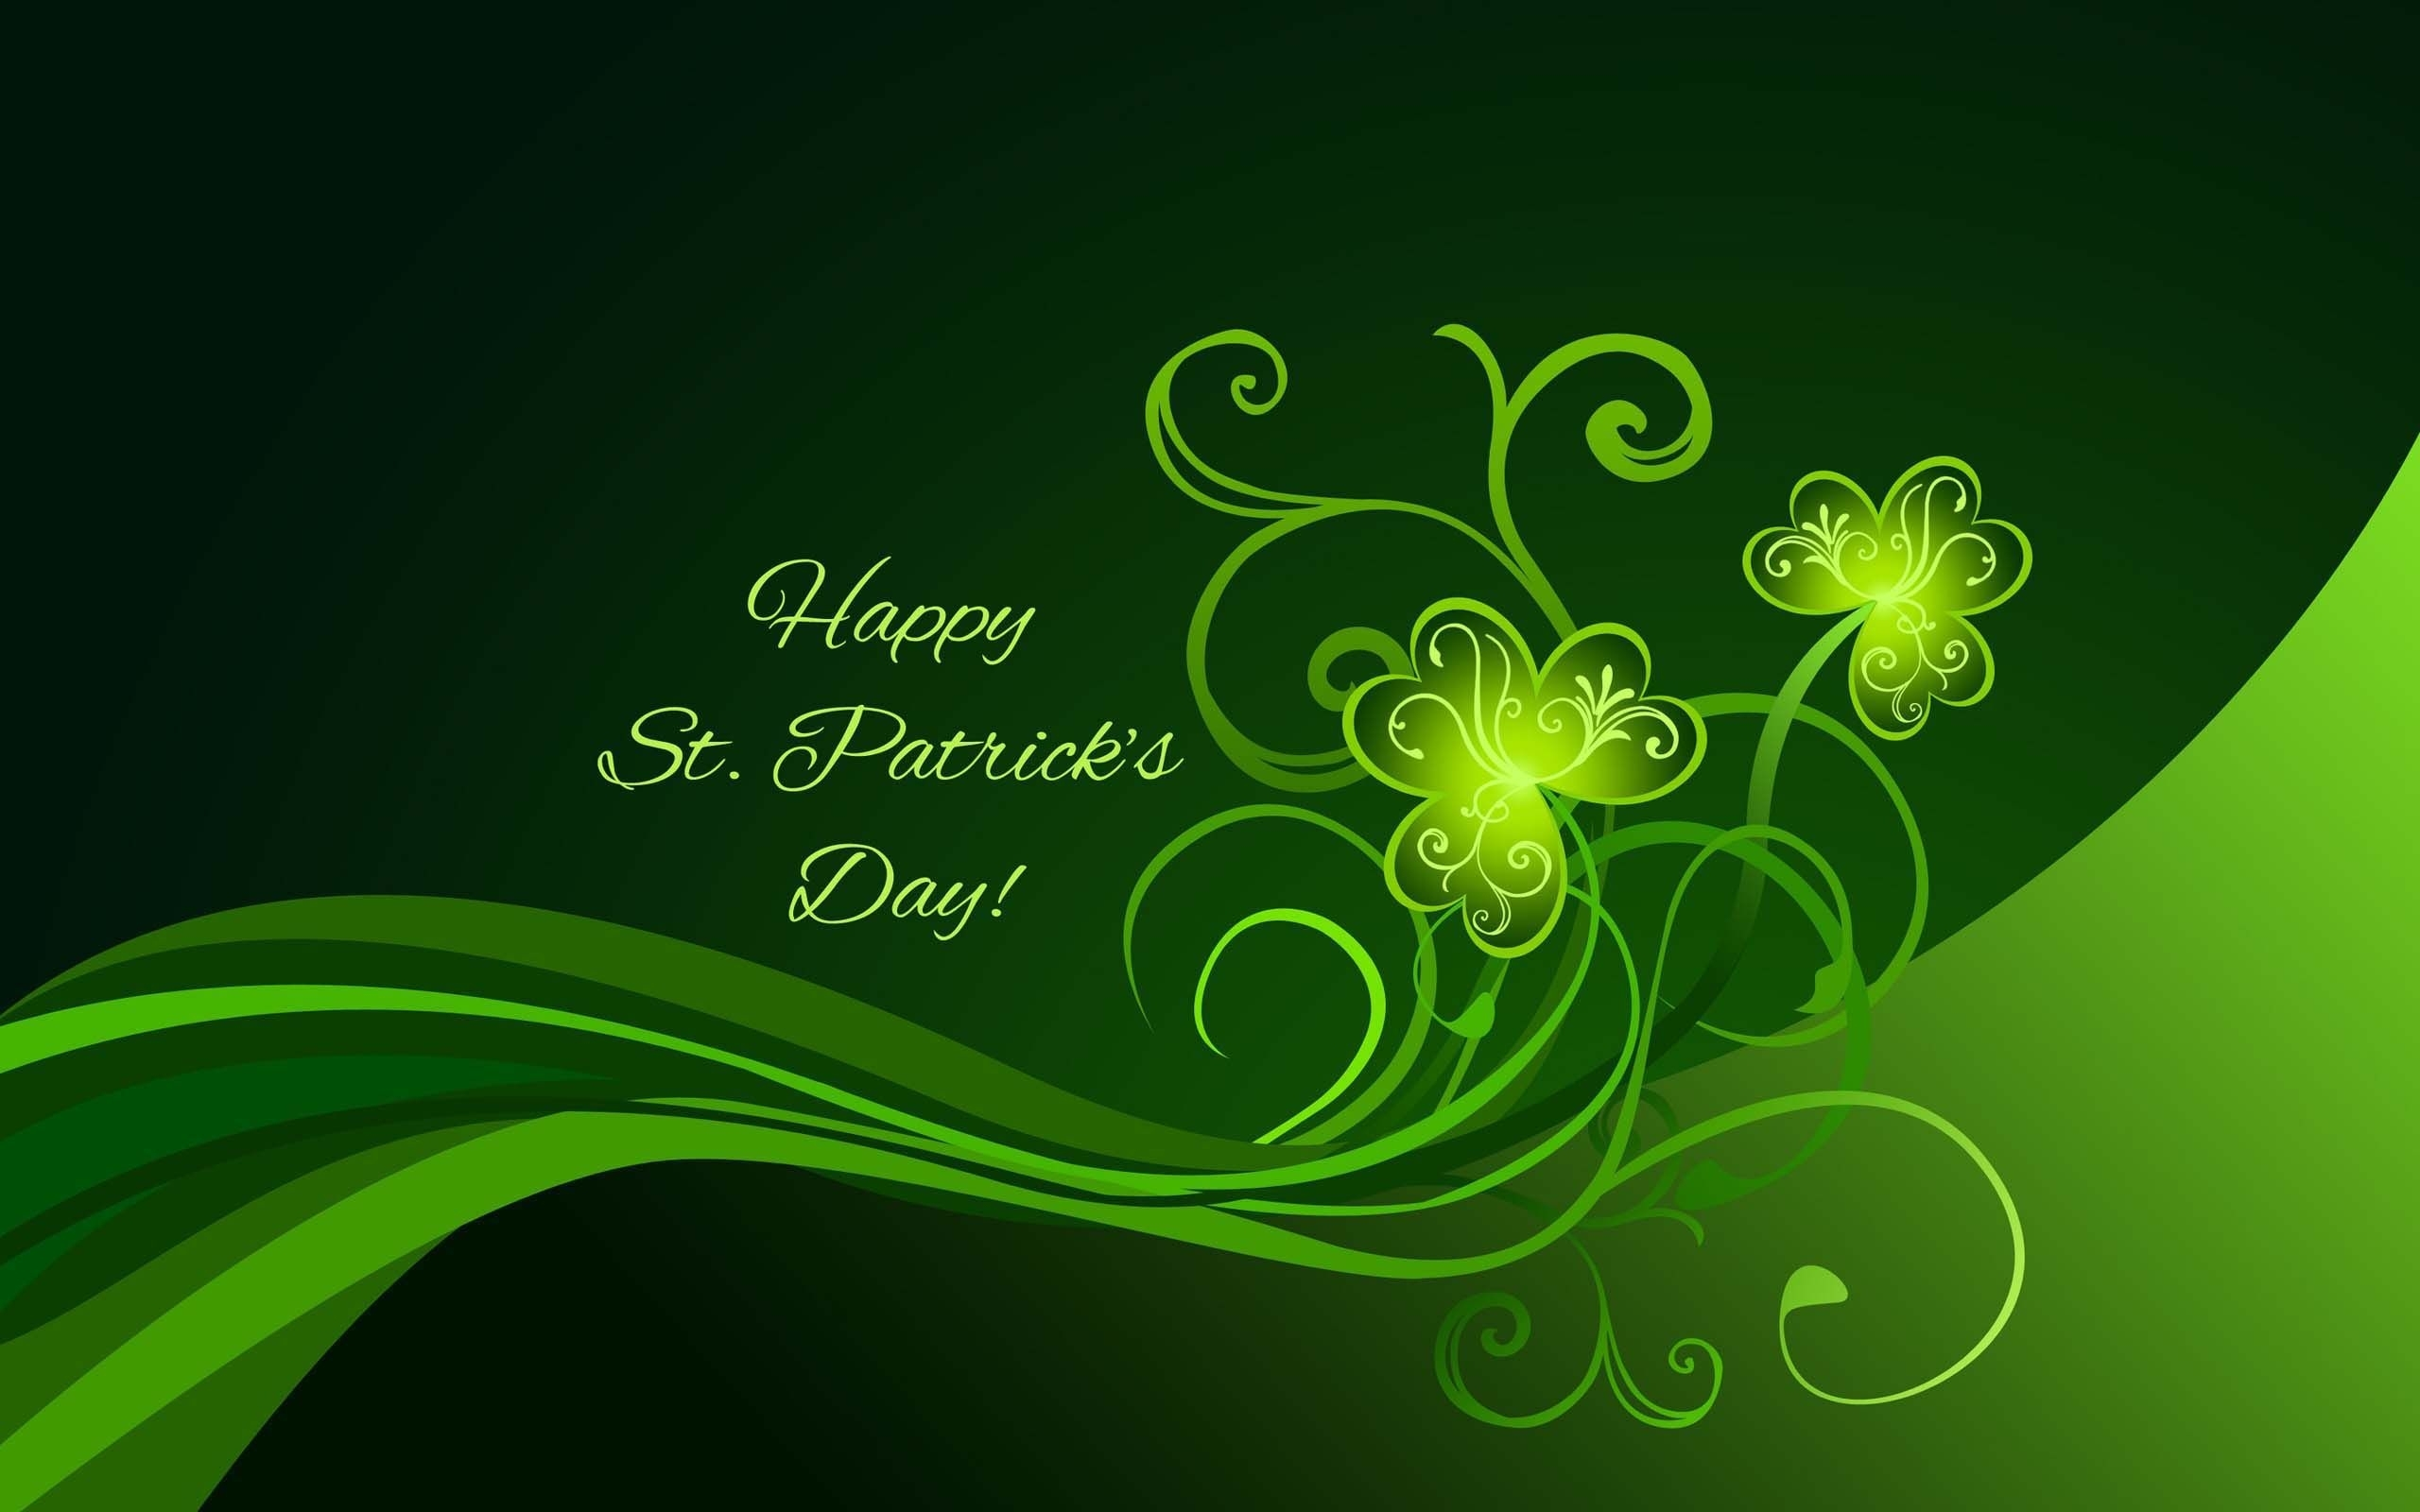 st. patrick's day wallpaper | st patricks day wallpaper hd beautify